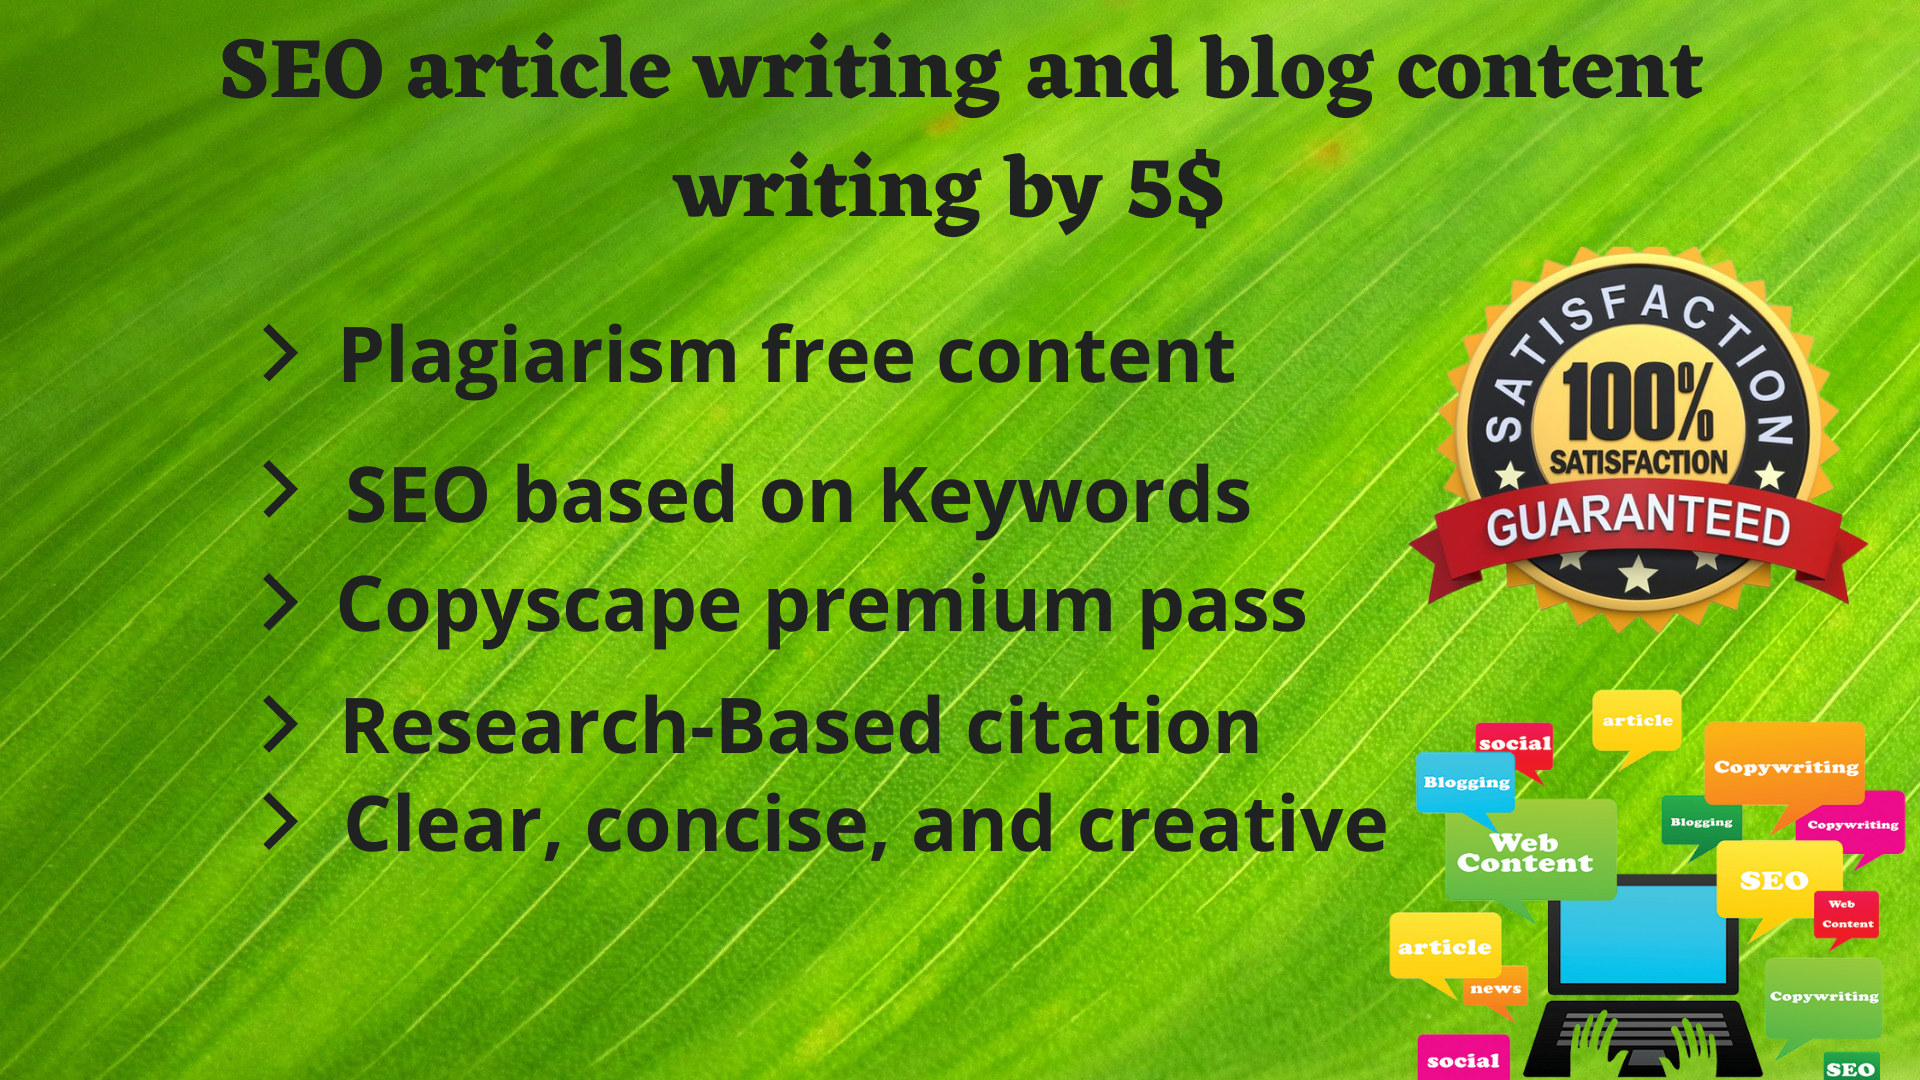 I will be your SEO article writer and blog content writer.